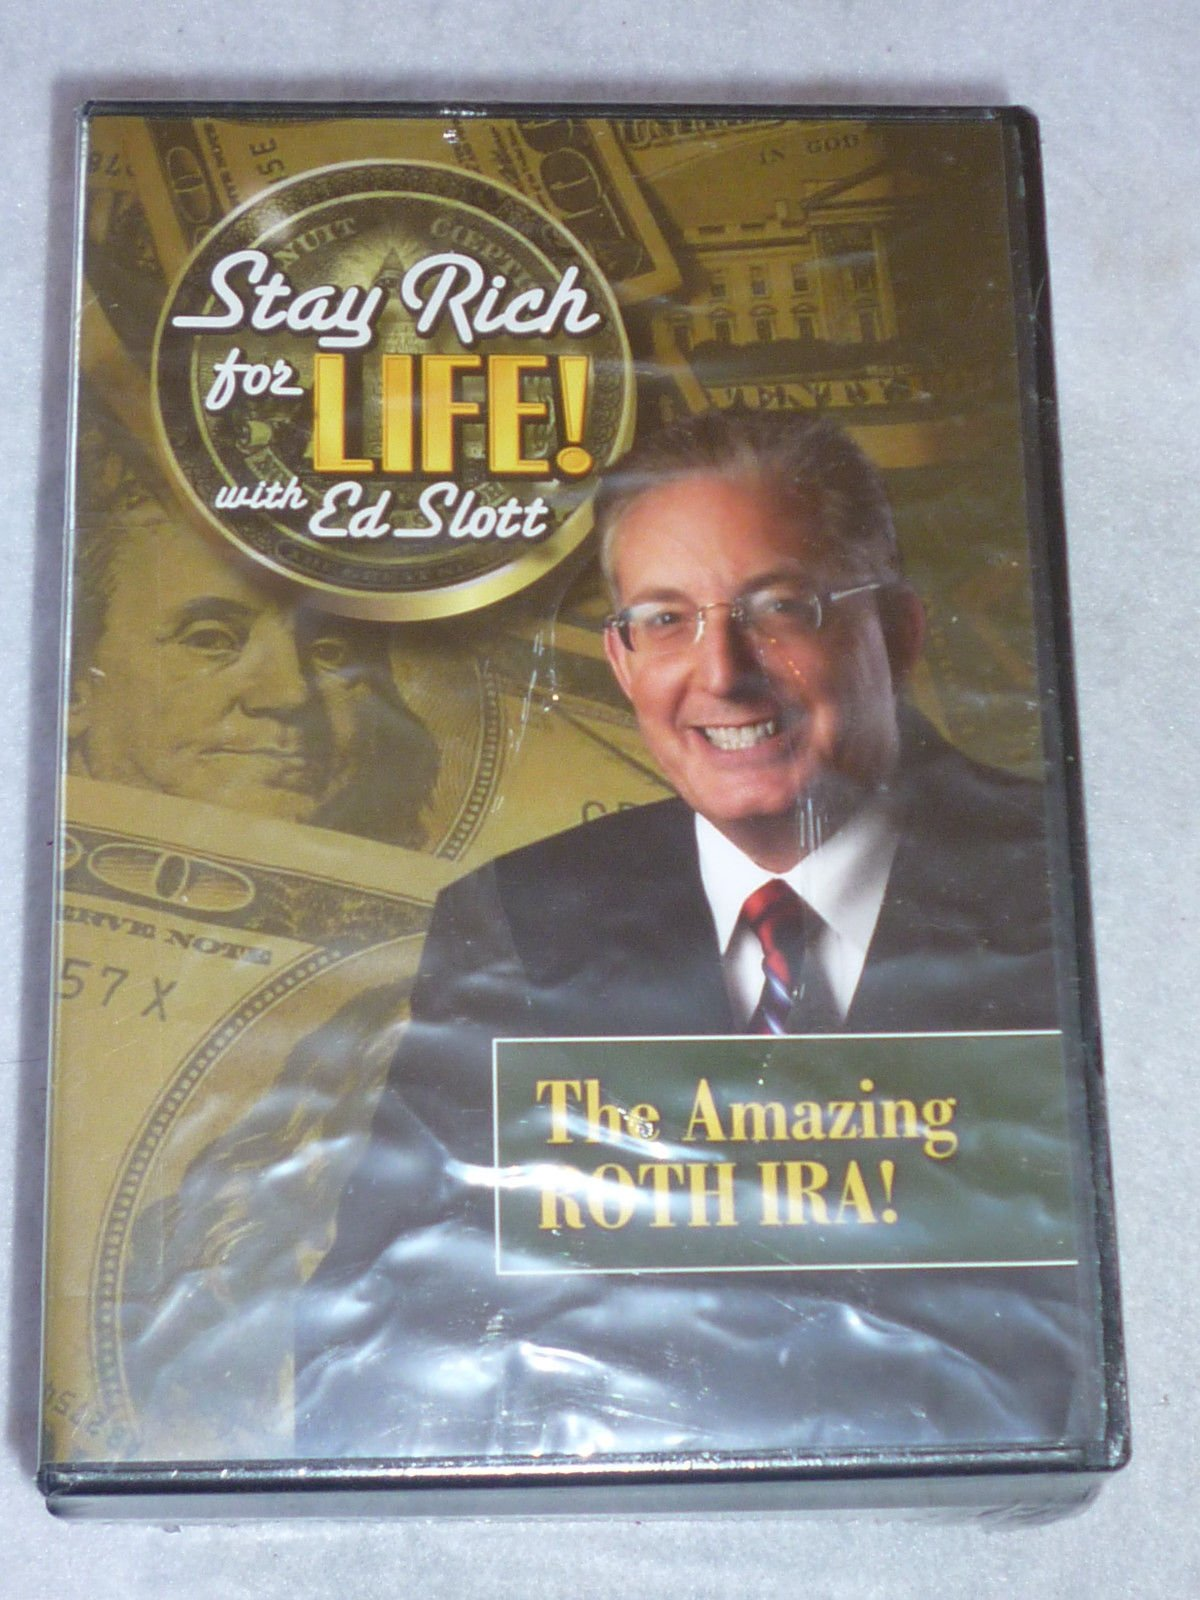 Stay Rich for Life! Set of 6 DVDs & 1 Audio CD: The Amazing ROTH IRA; Top 20 Strategies for 2010; Watch Out-7 Red Flags of Financial Scams; Weathering a Financial Storm; Your Beneficiary Guide; A Public TV. Special; One on One with Ed Slott-Audio Cd